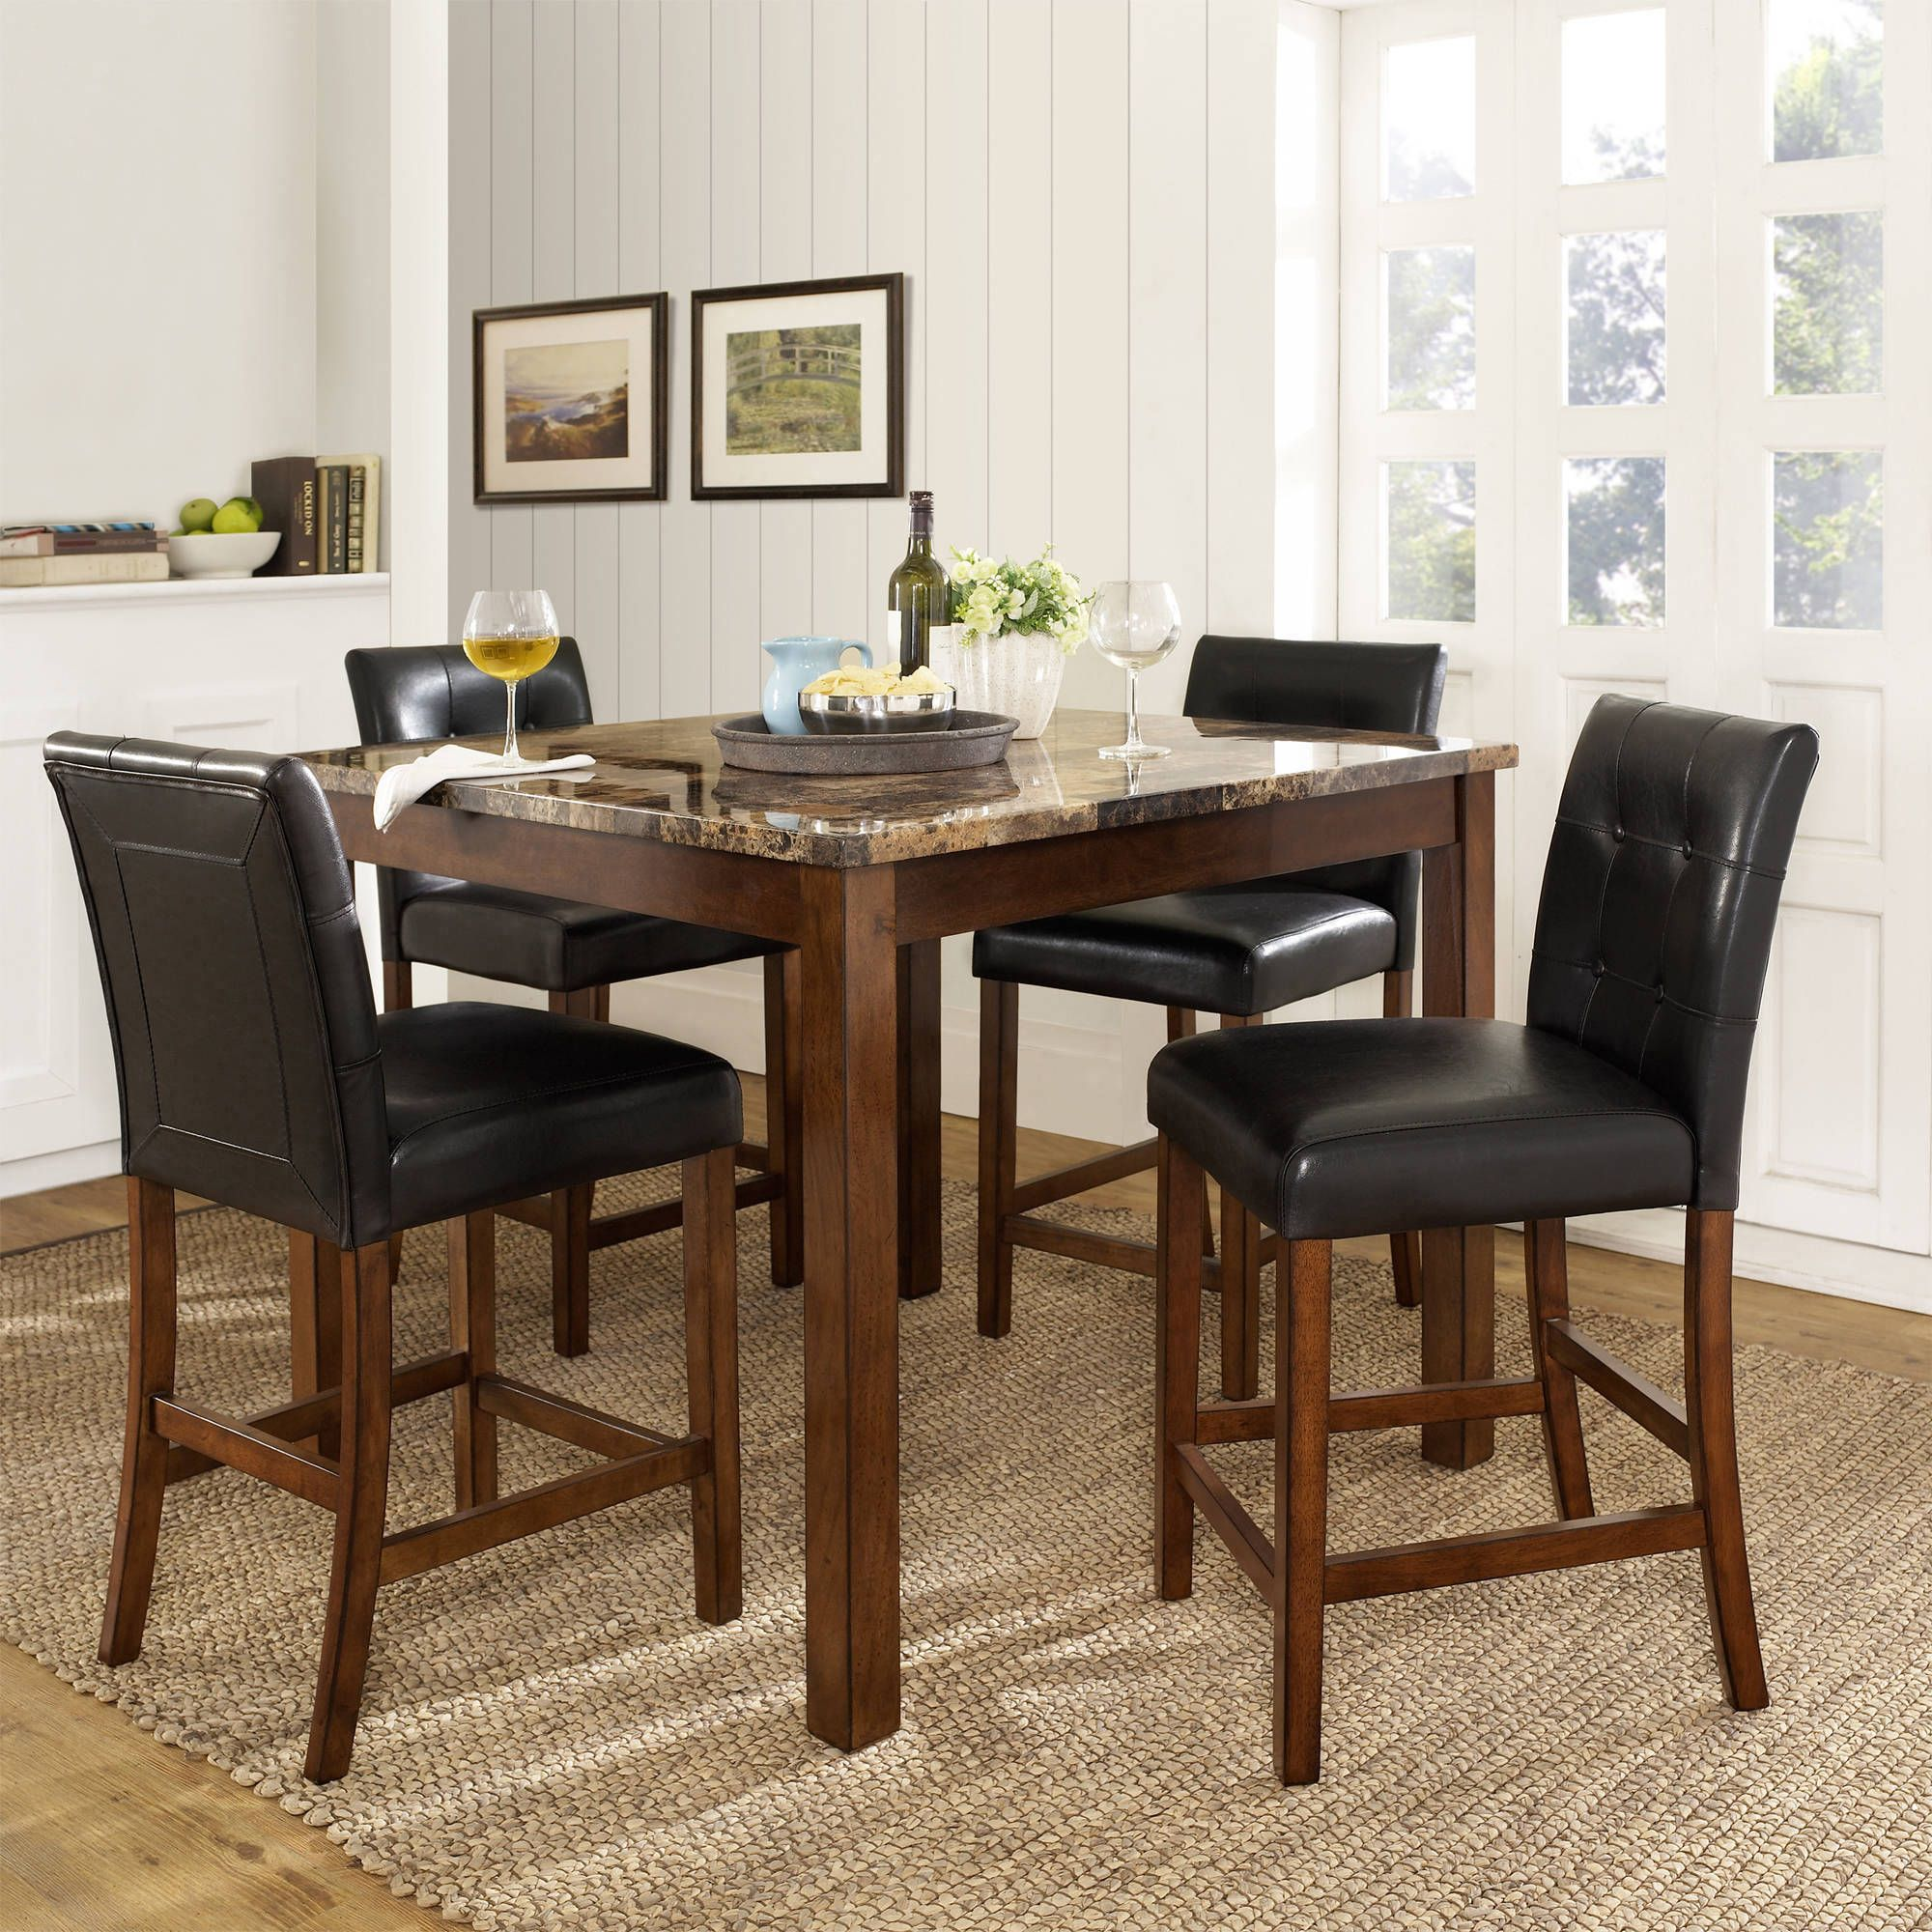 Wood Dining Room Table Sets | DINING FURNITURE | Pinterest ...